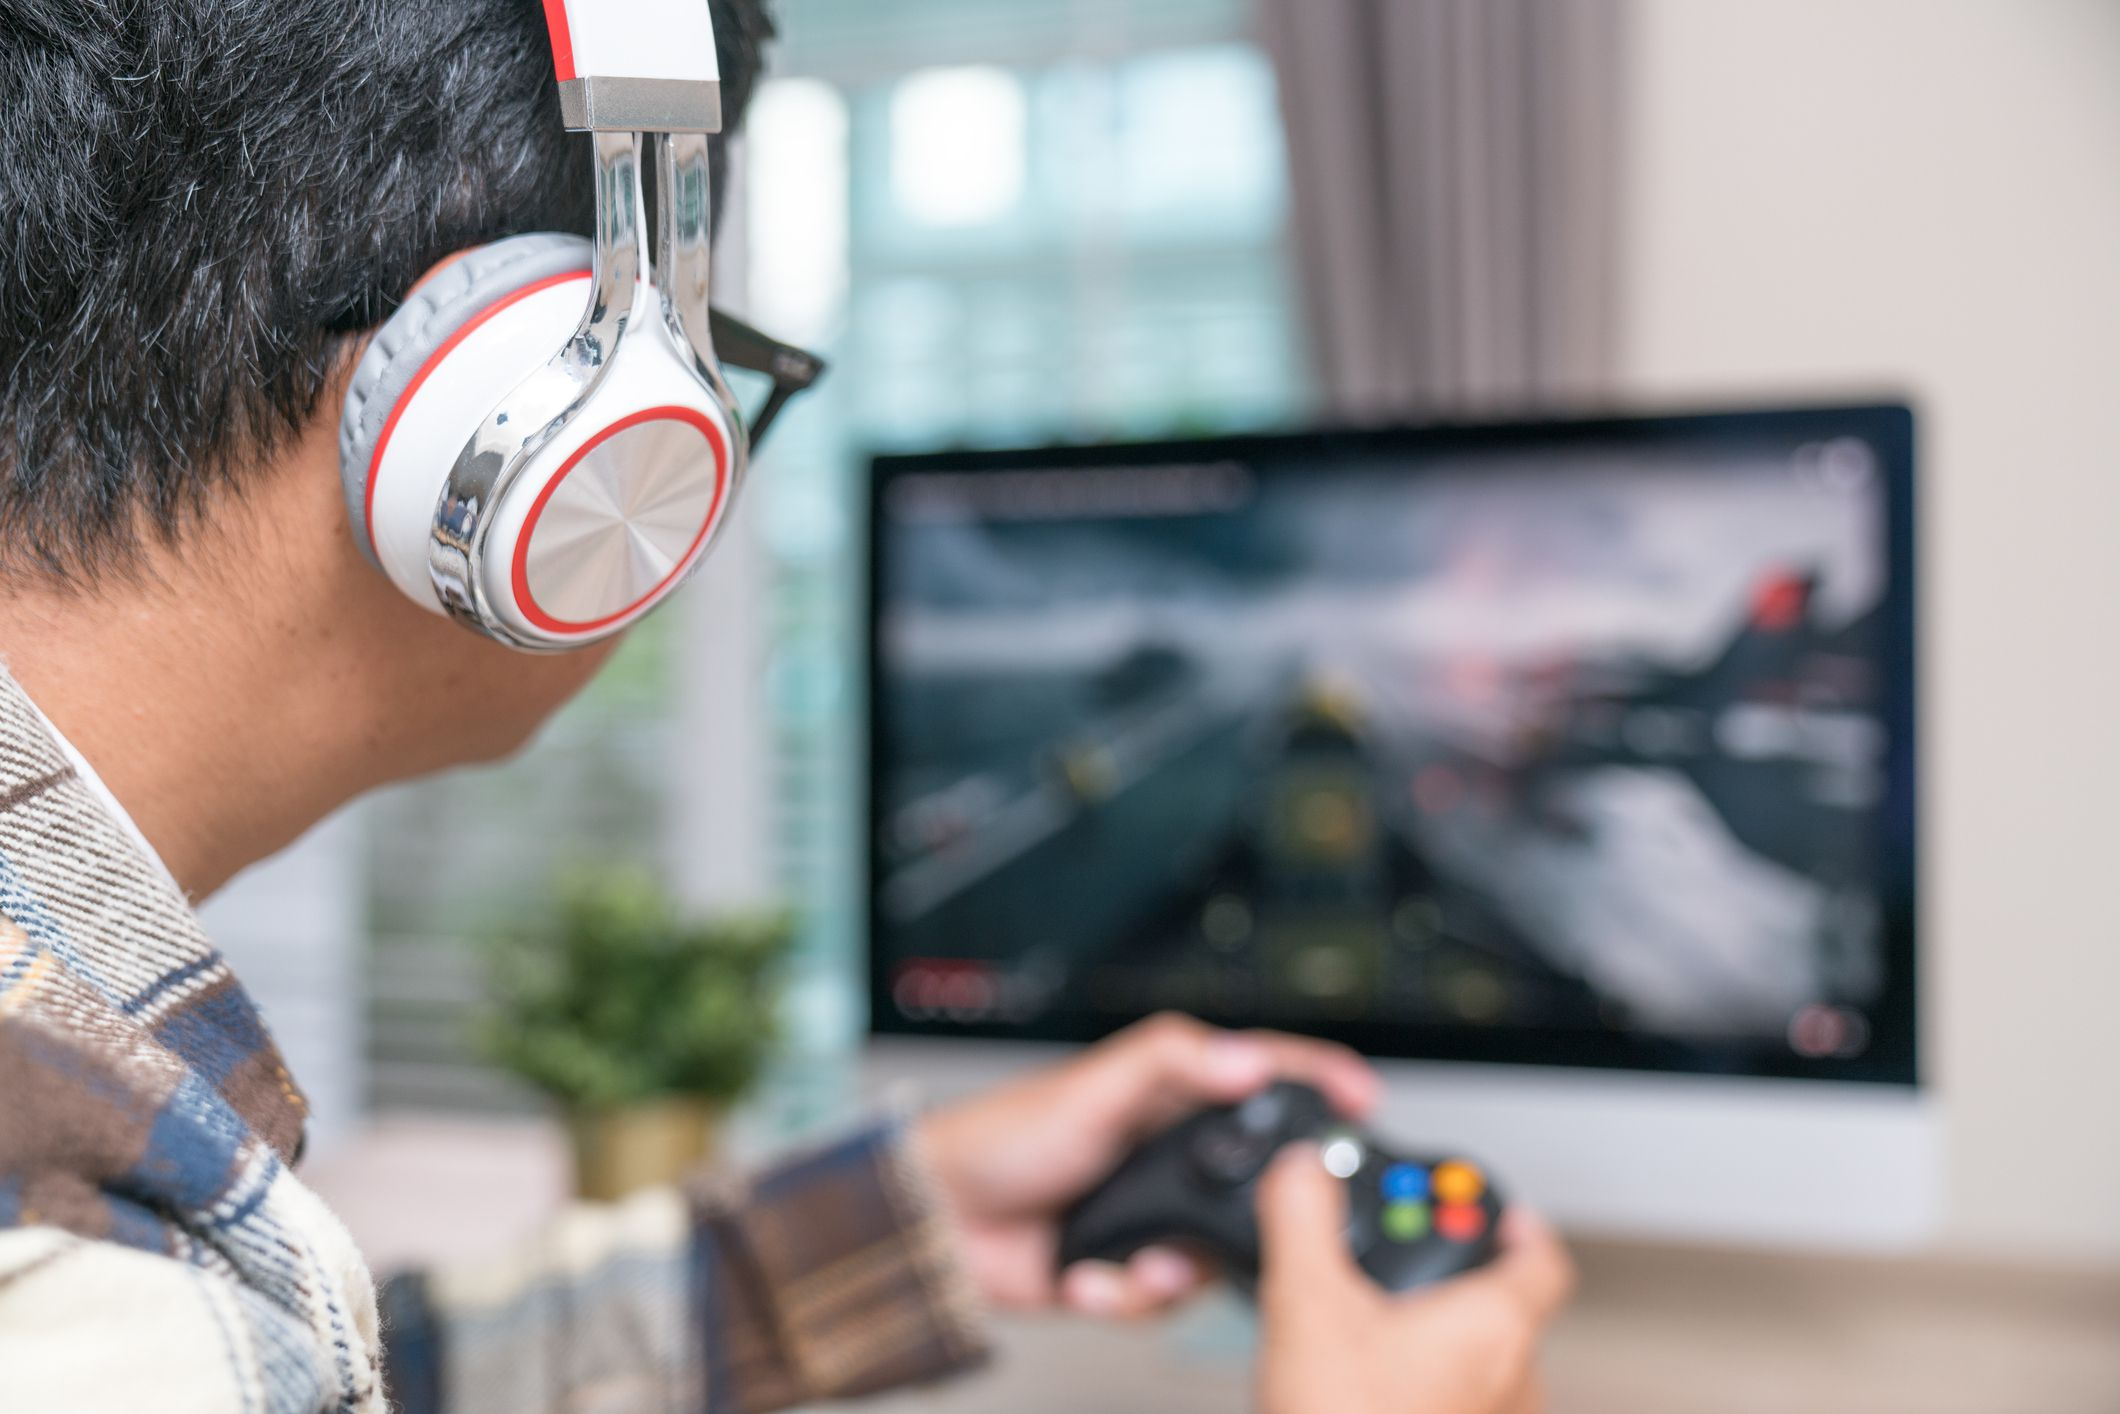 The 8 Best Gaming Headsets for Under $50 in 2019